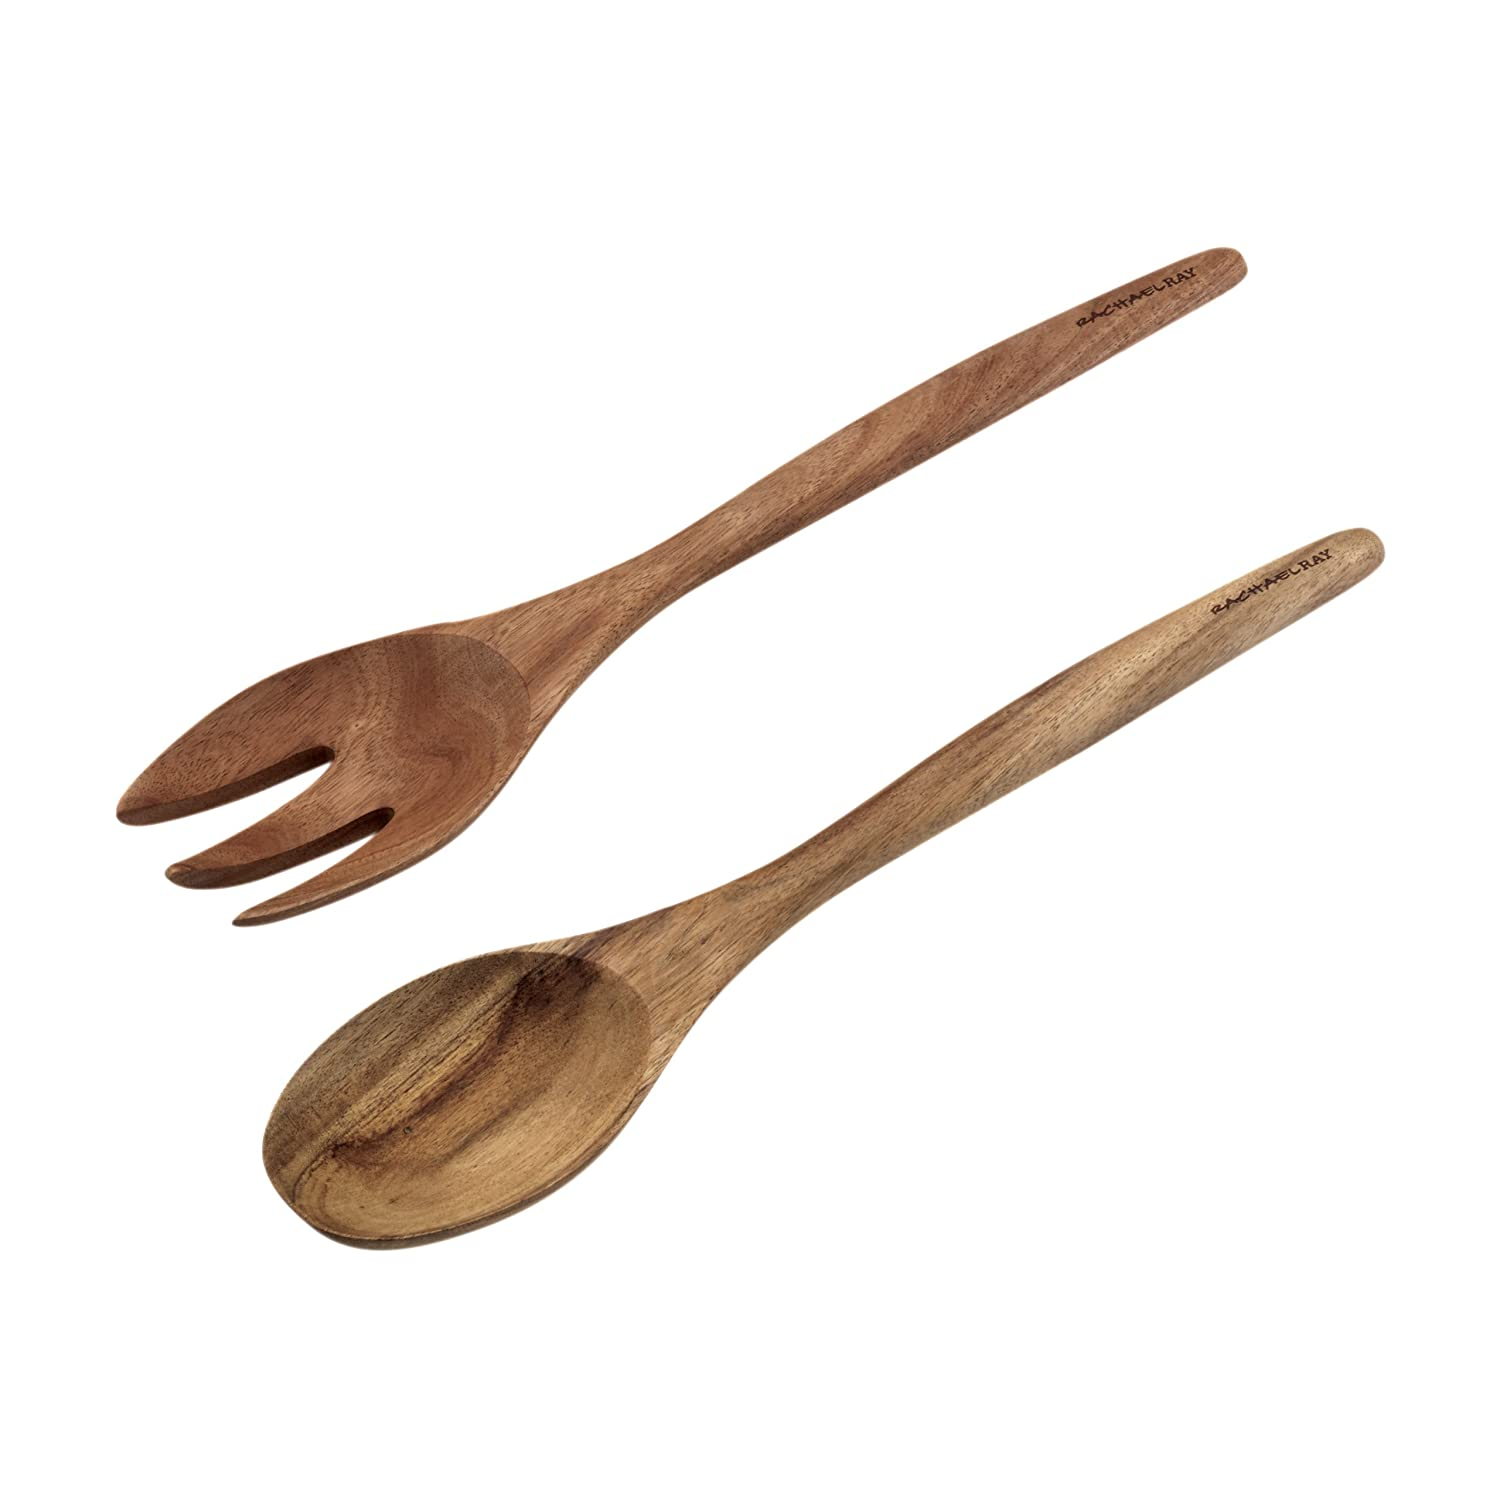 Rachael Ray Cucina Tools 2-Piece Wooden Salad Utensil Set Meyer 50728